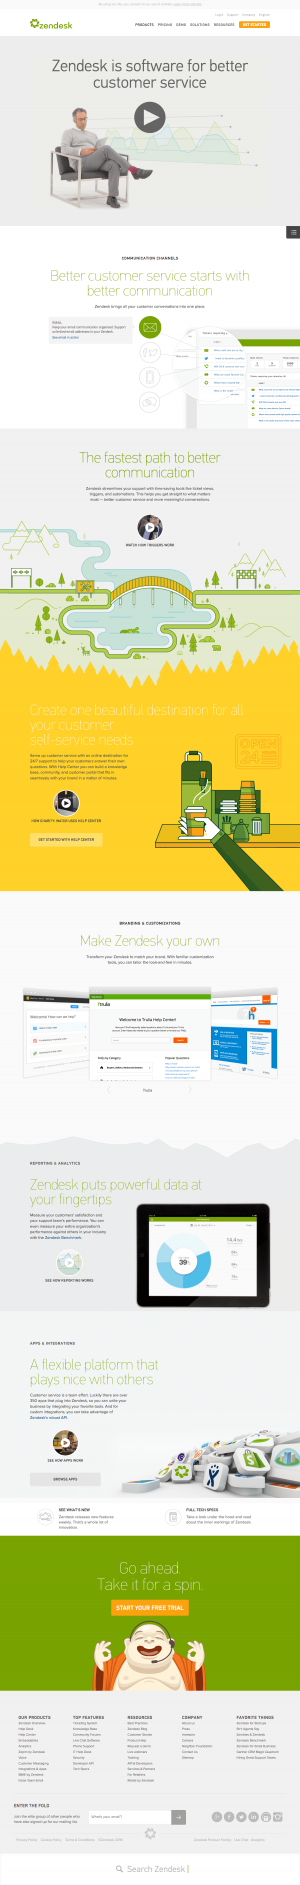 Features inspiration page - saas zendesk